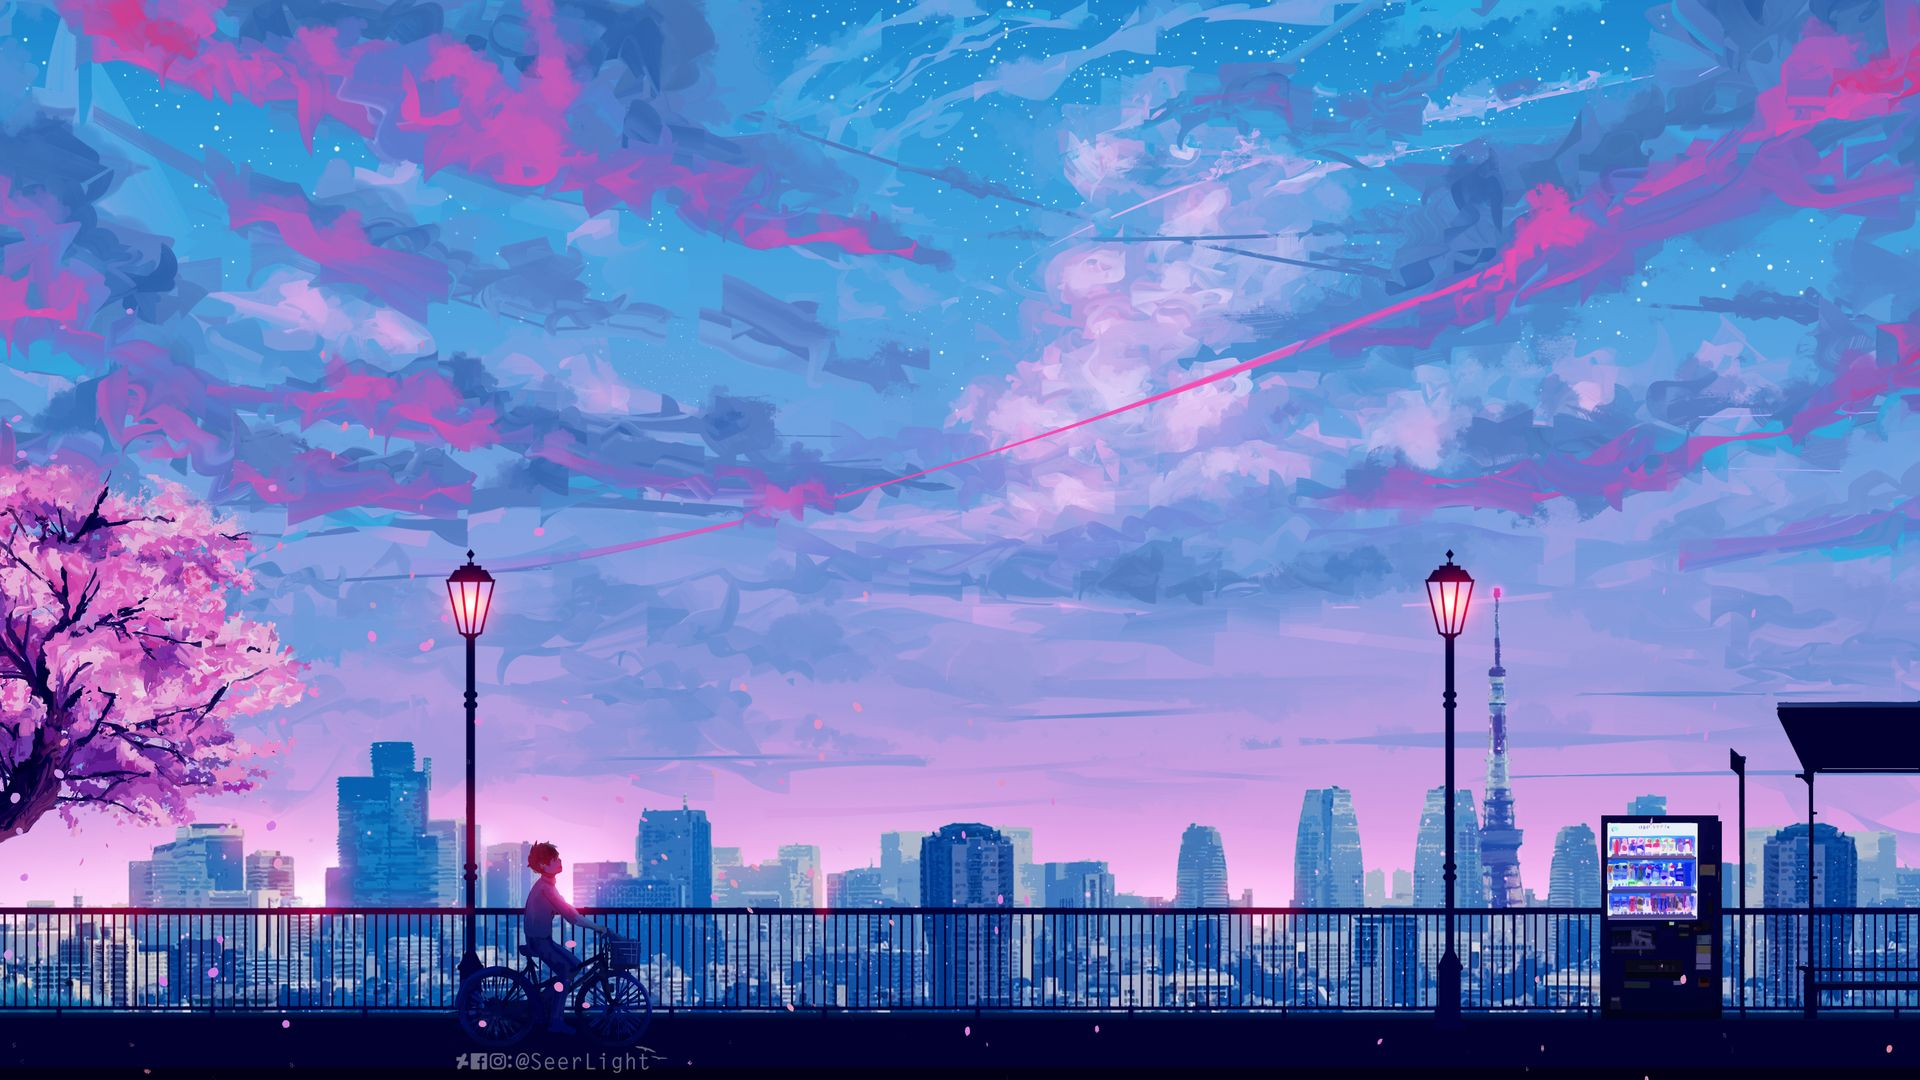 90s Anime Wallpapers Top Free 90s Anime Backgrounds Wallpaperaccess